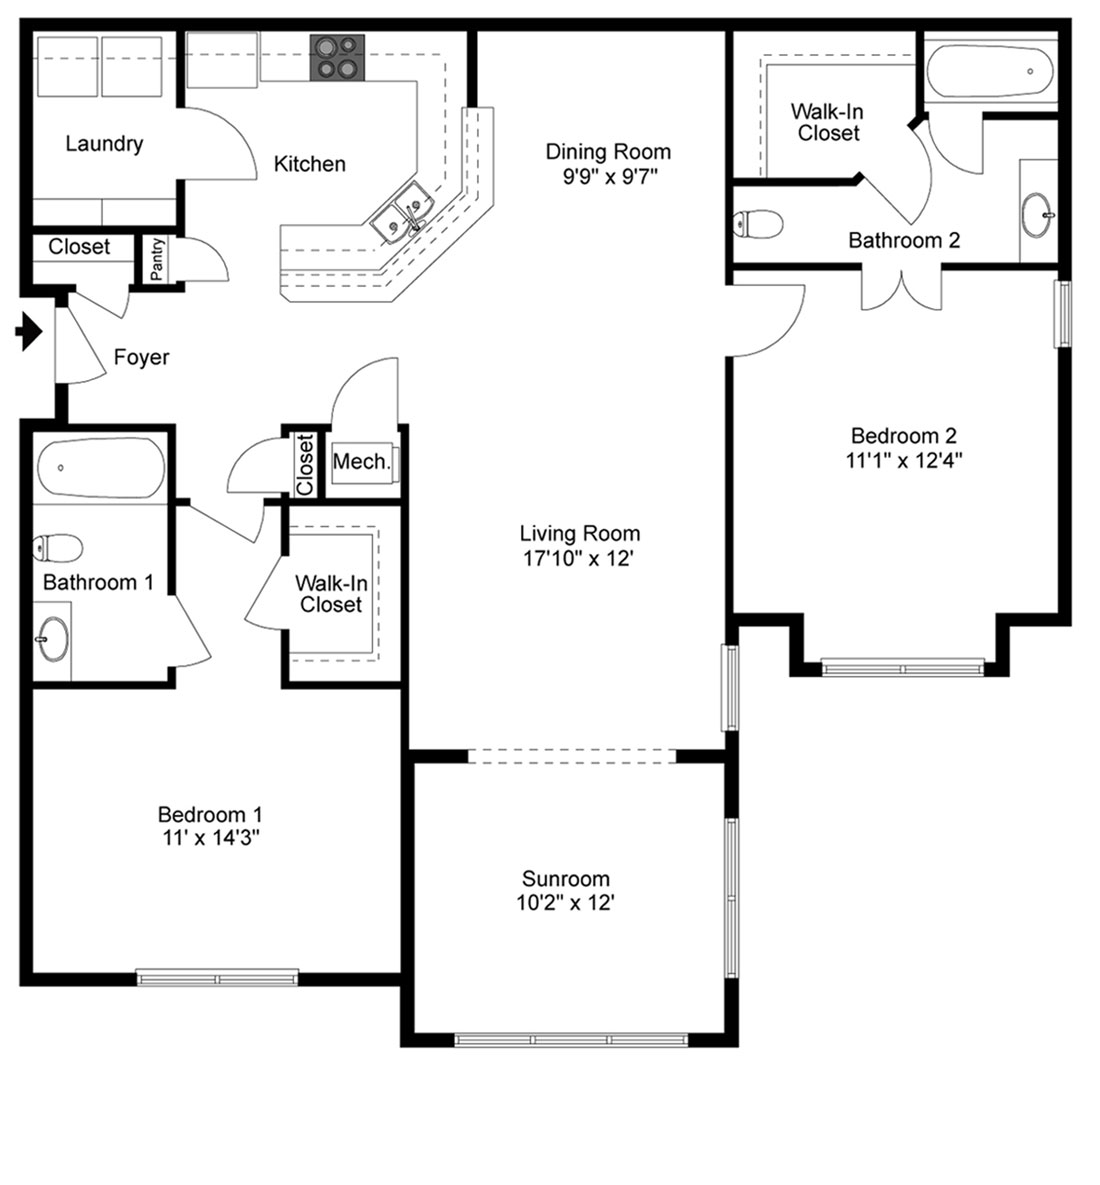 Two Bedrooms And Two Baths Sunroom Home Huntsville AL UAH